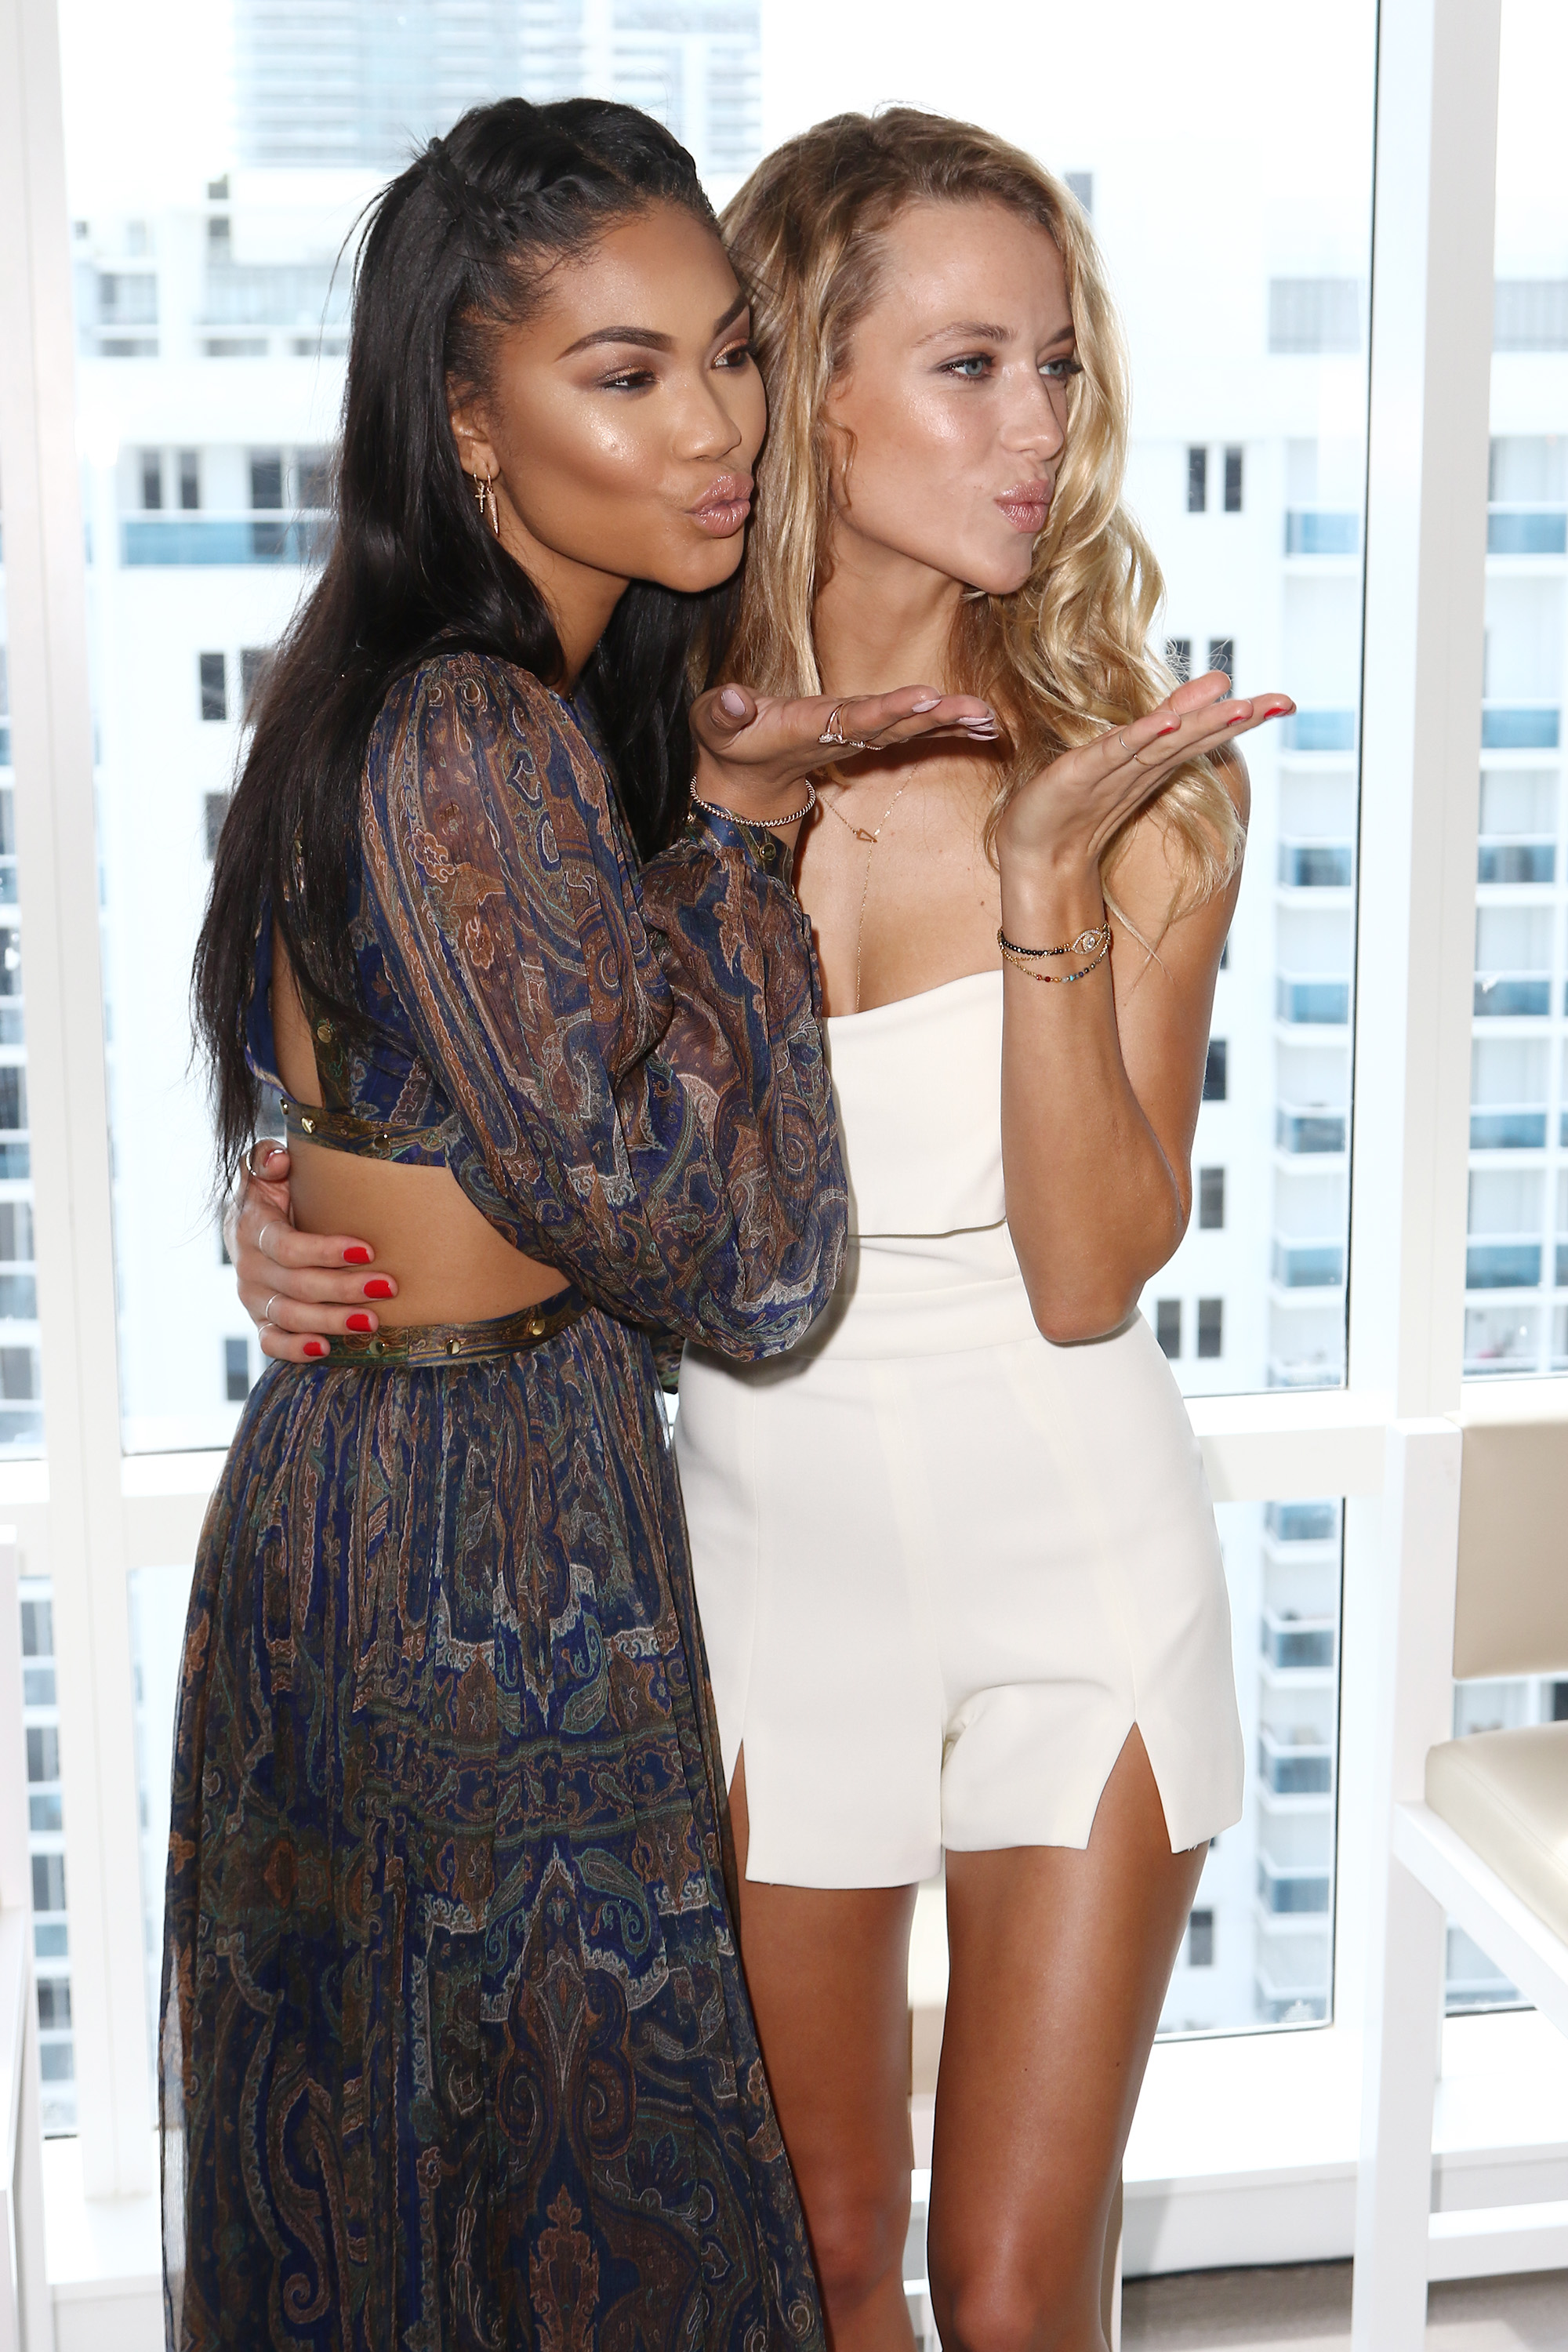 Sports Illustrated Swimsuit Models Hannah Ferguson and Chanel Iman reveal SI Swimsuit 2016 launch week events in Miami at 1 Hotel & Homes South Beach Photo Credit: Alexander Tamargo/Getty Images for Sports Illustrated